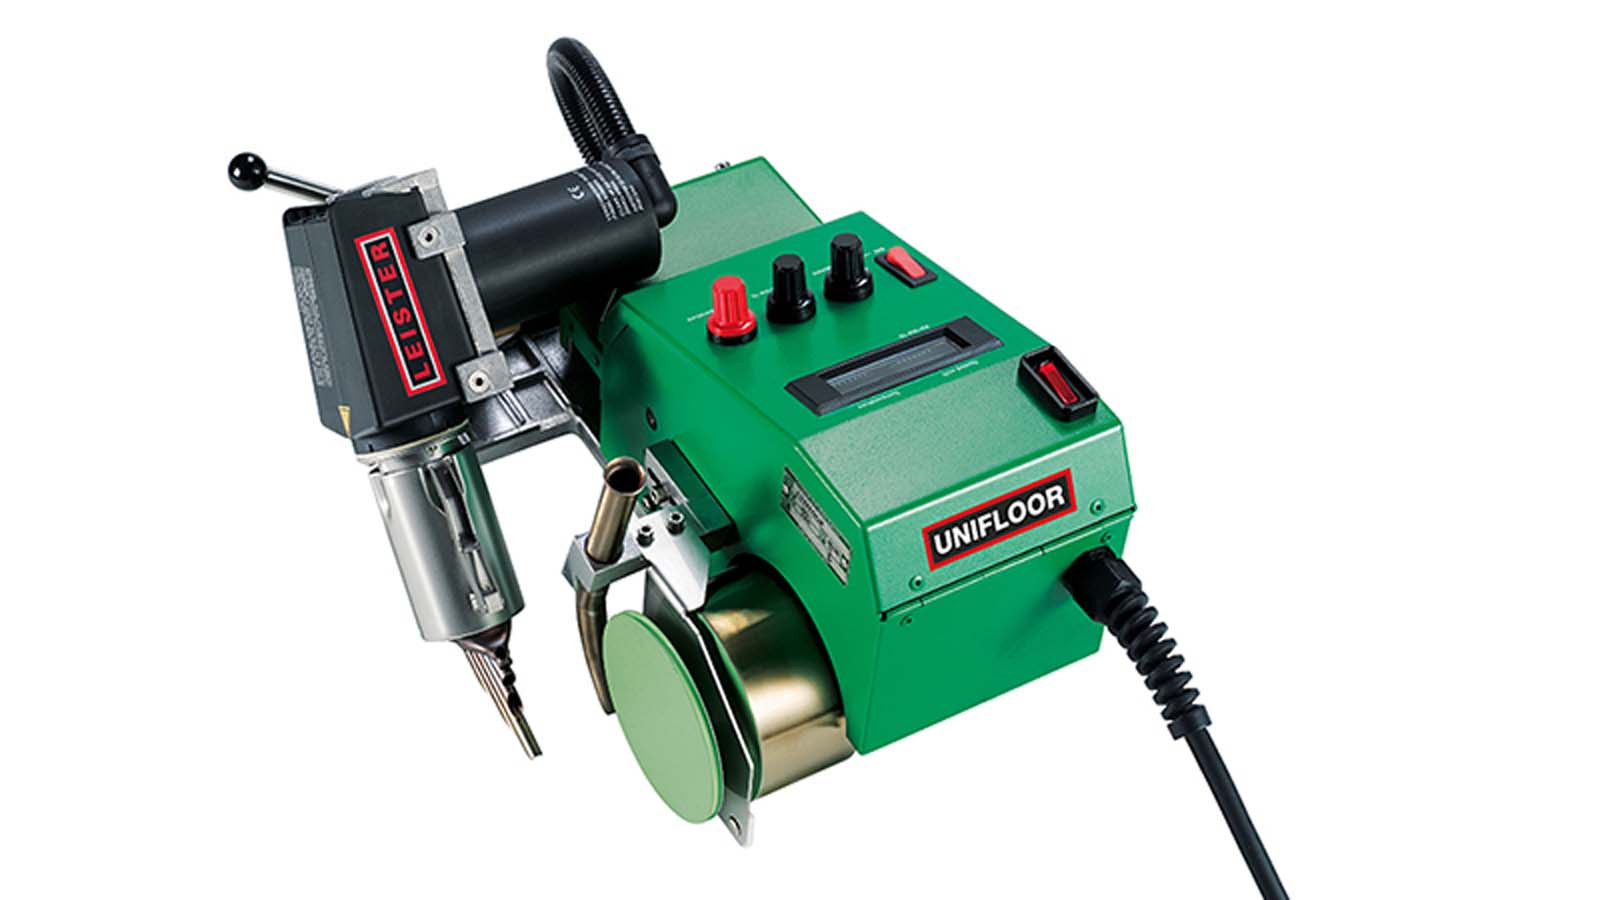 Leister UNIFLOOR E Hot-air welder